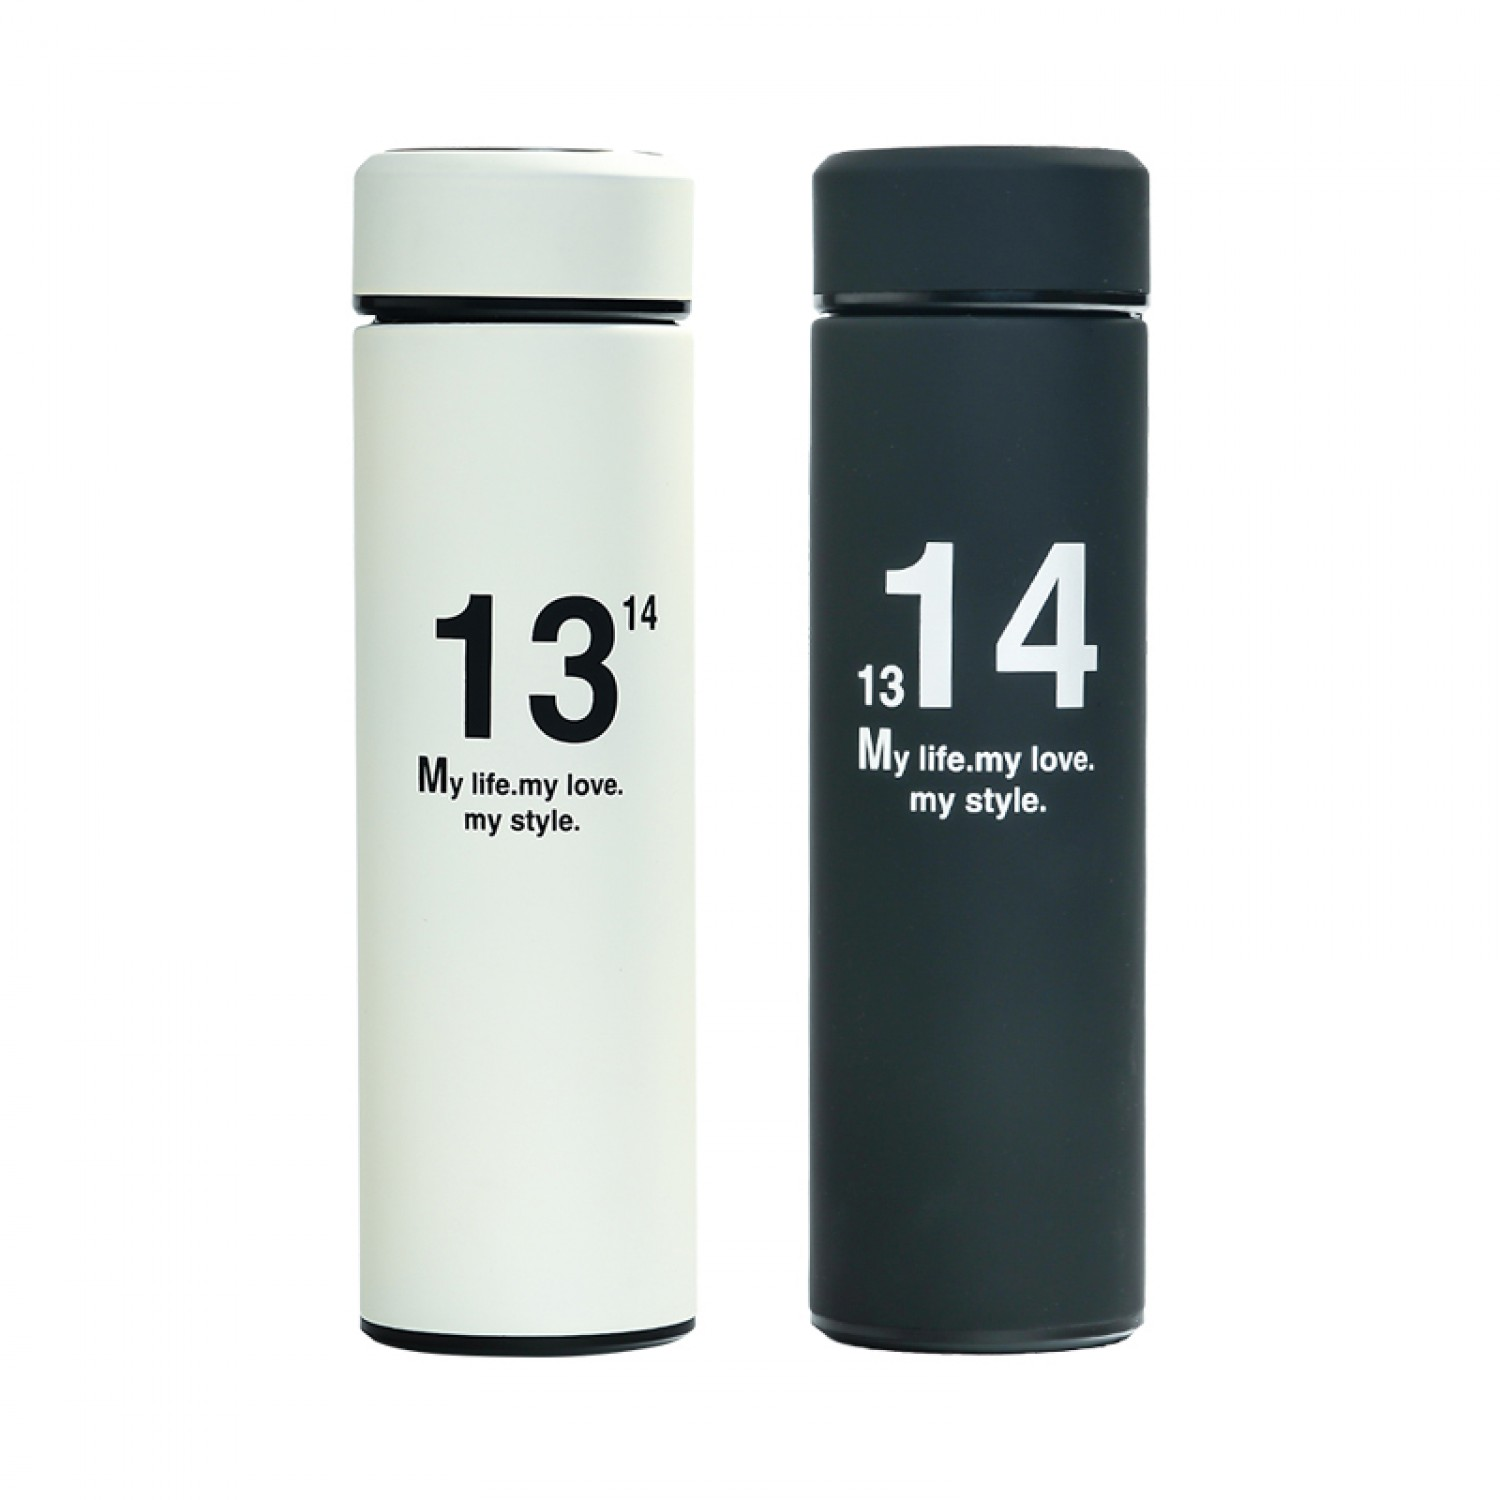 Diller MLH8569 Thermal Insulated Thermos for Couple